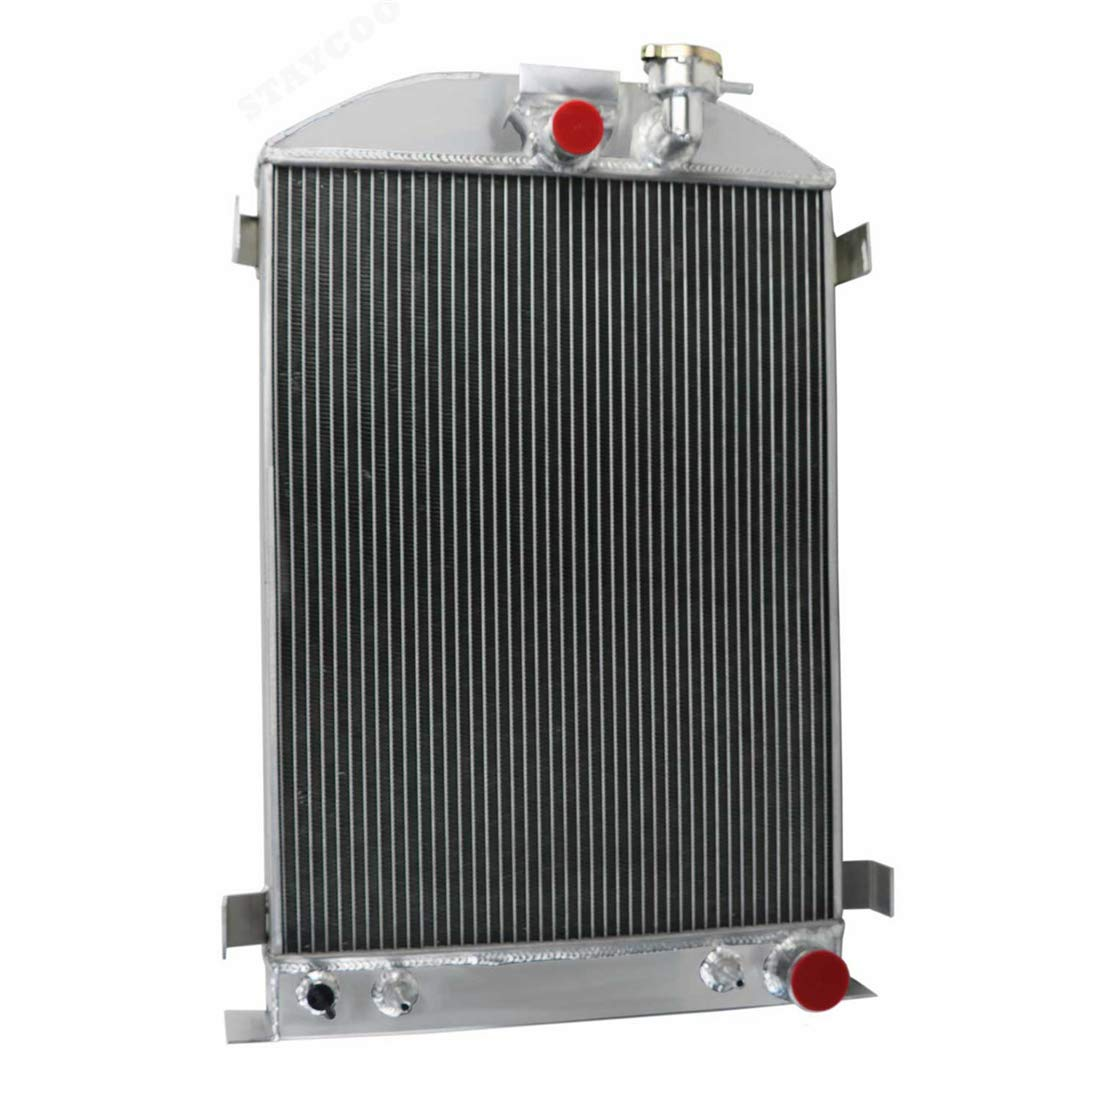 """STAYCOO 4 Row All Aluminum Radiator for 1930-1931 Ford Model A &1932 Model B with Chevy V8 Engine 28"""" Height 1935 1936 Hot Rod"""